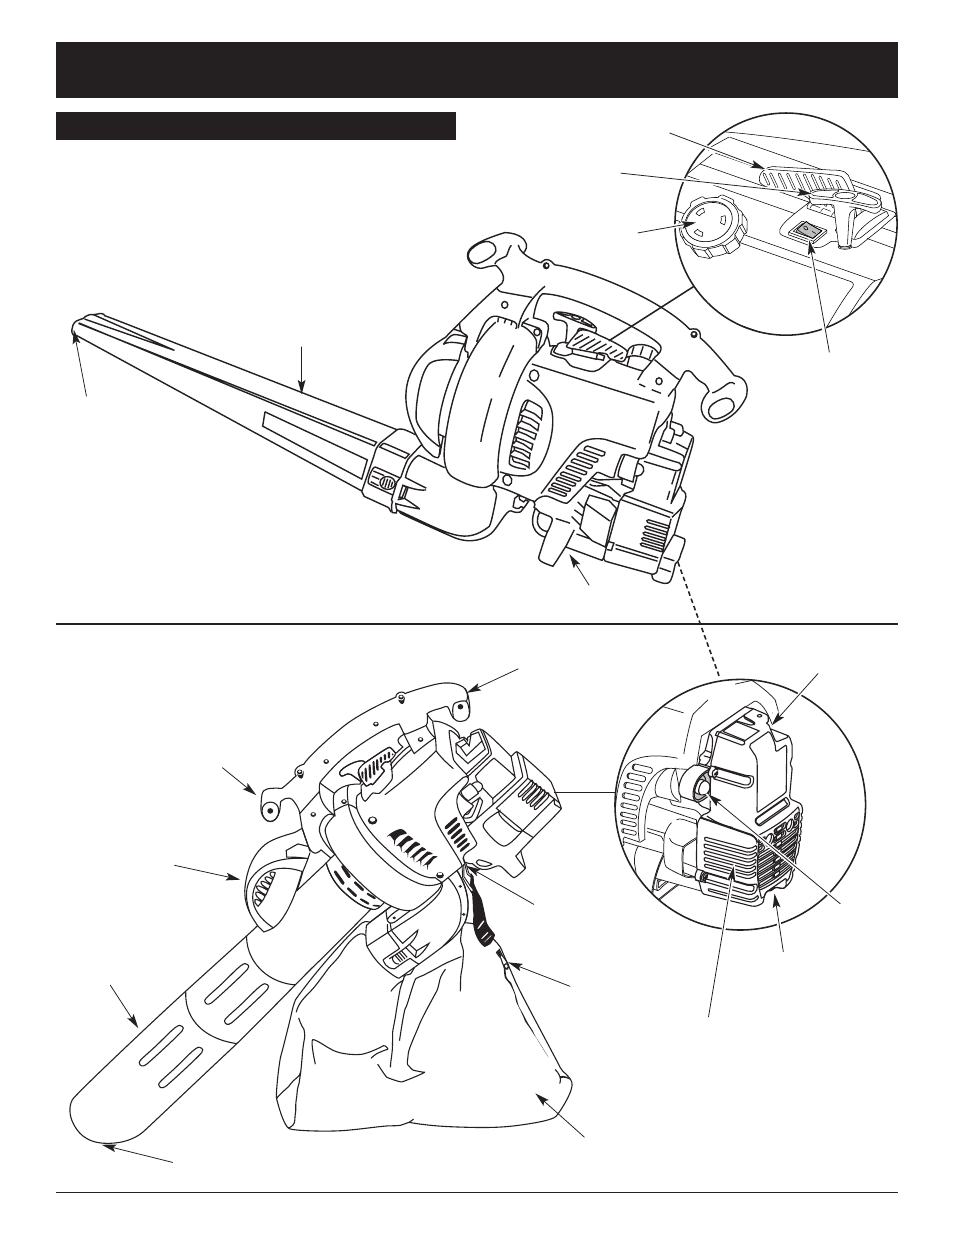 Rules for safe operation, Assembled as a blower assembled